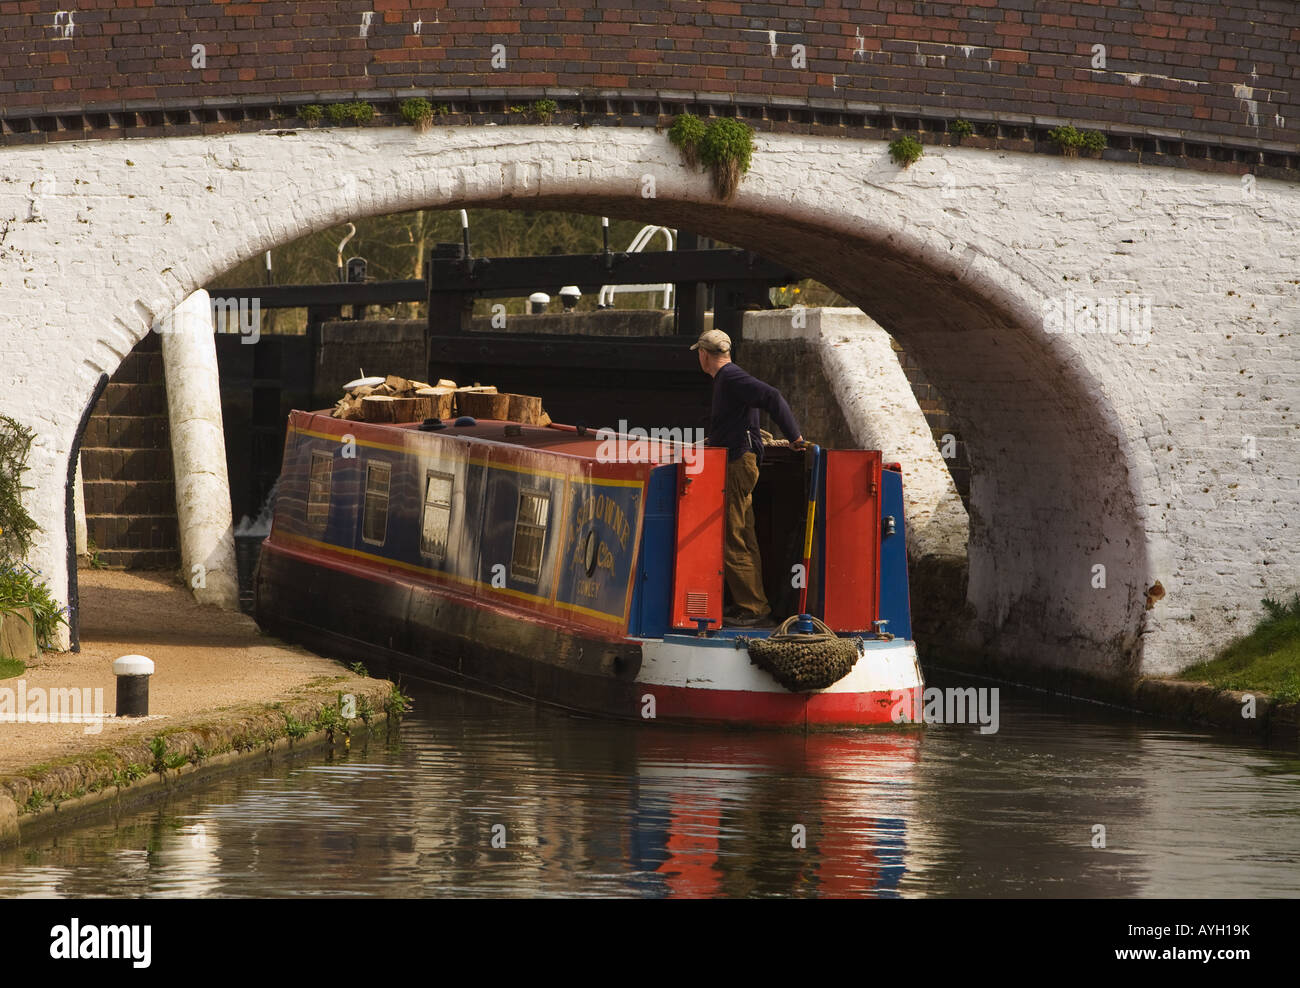 Narrow Boat underneath a Canal Bridge at Stockers Lock on the Grand Union Canal near Rickmansworth, Herts. - Stock Image